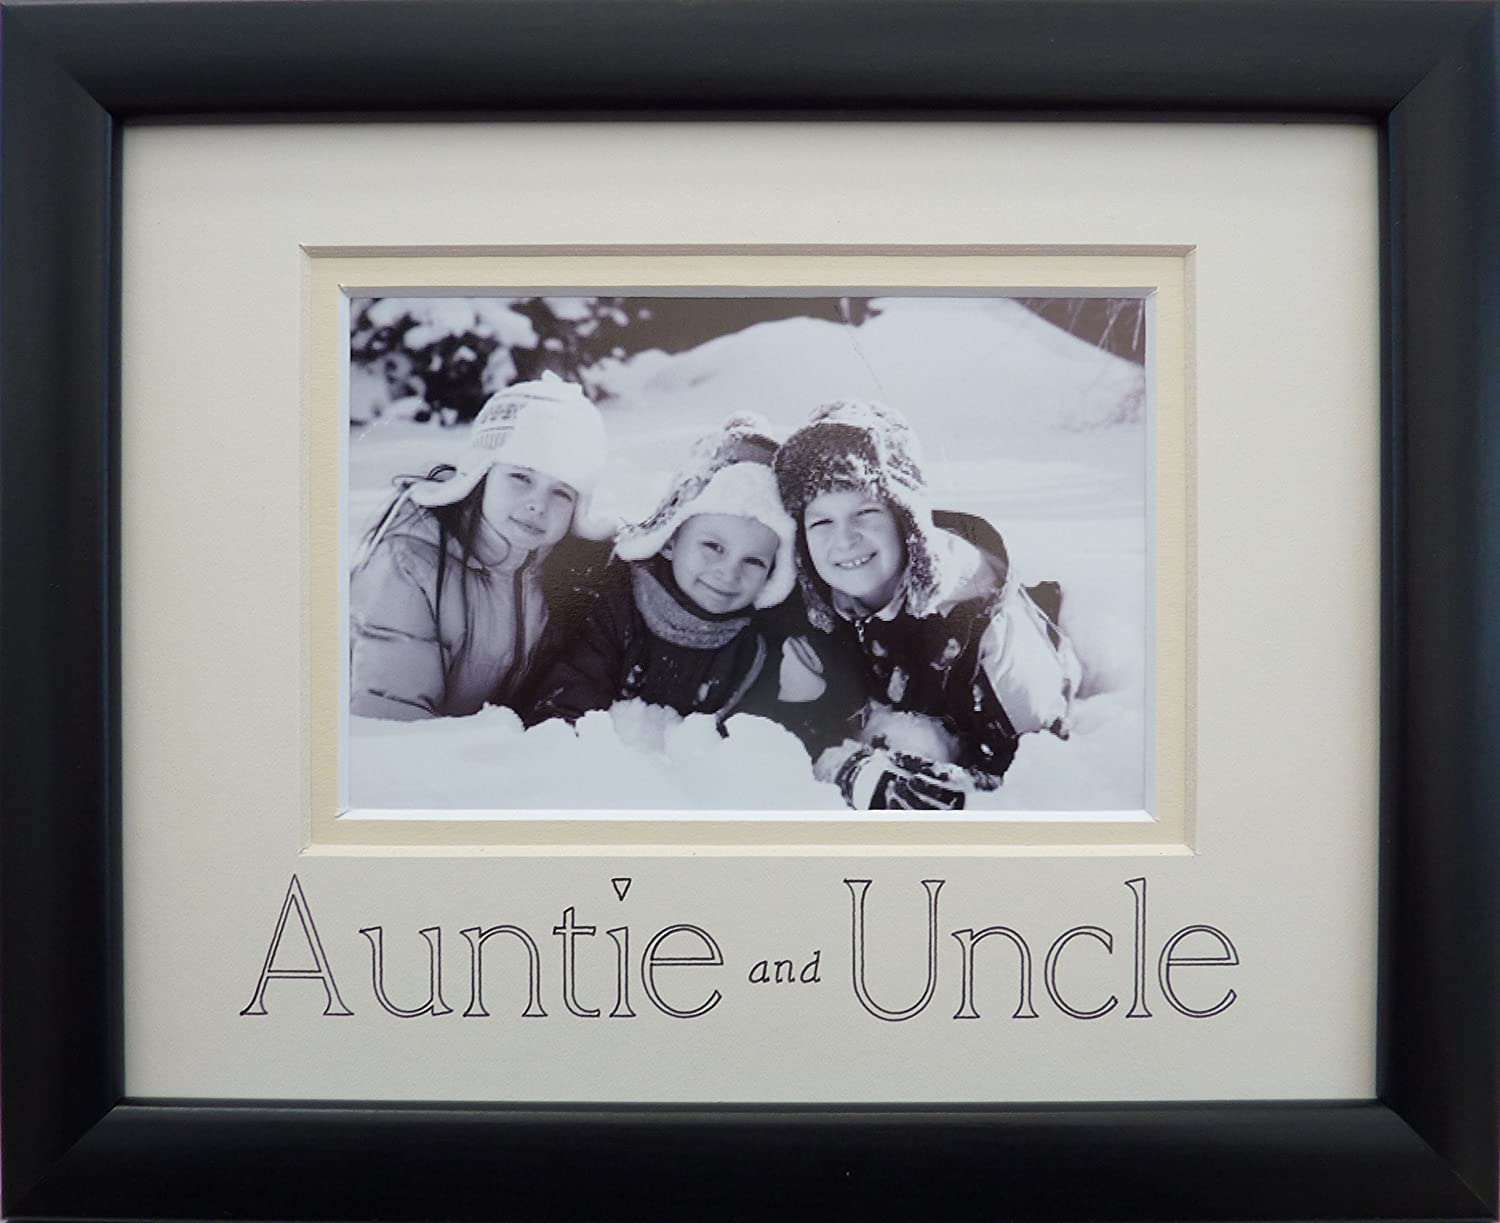 auntie and uncle photo frame 9 x 7 black landscape